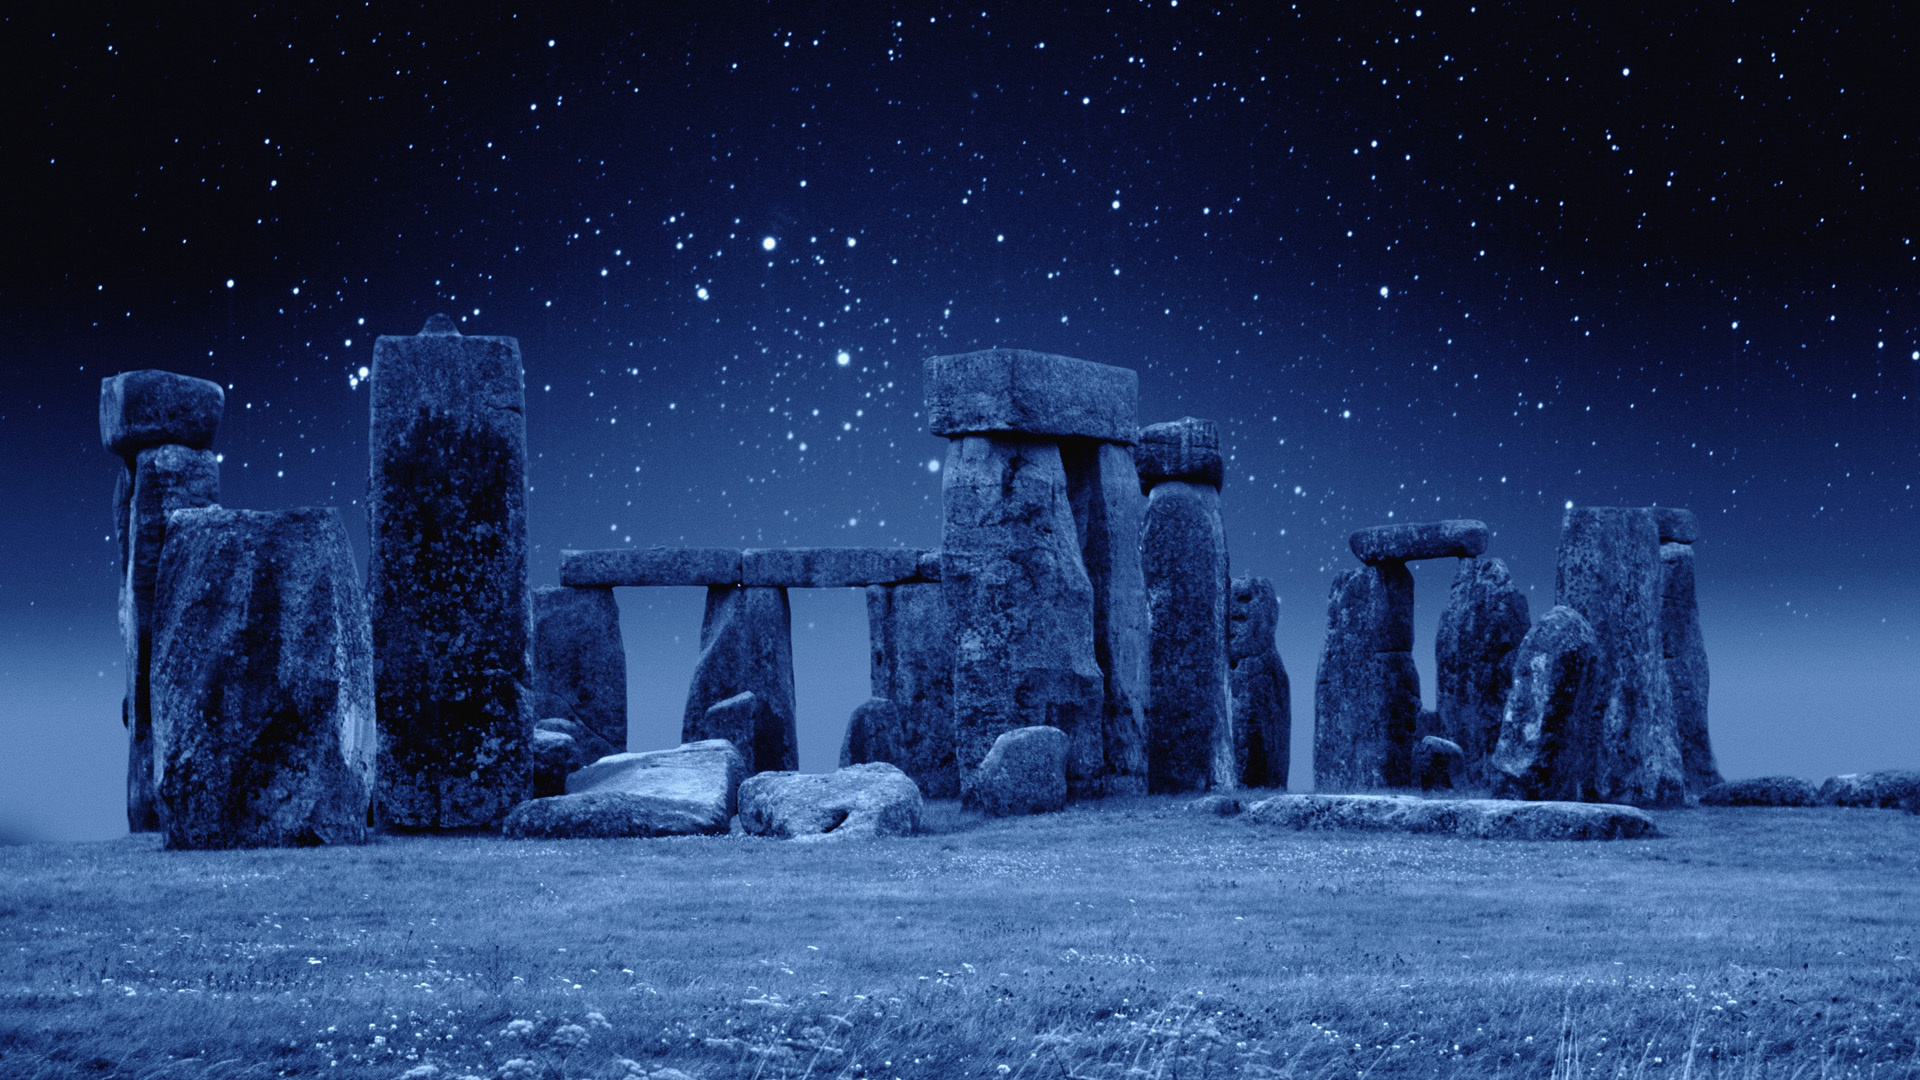 Download Stonehenge wallpaper (1920x1080)